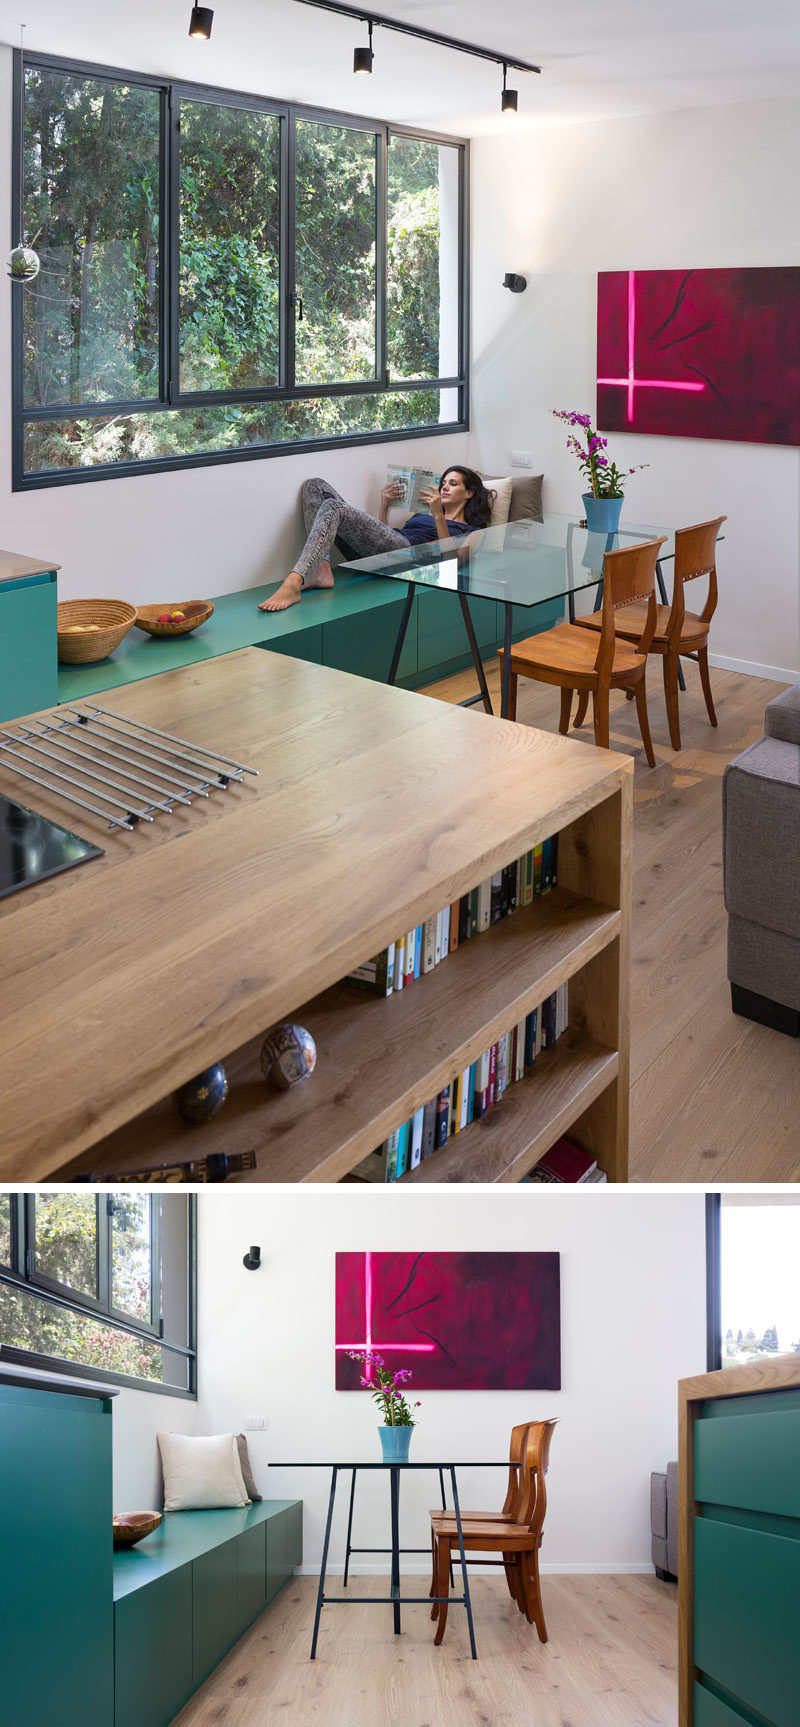 In this modern apartment, the green kitchen cabinetry extends into the dining area in the form of a bench to provide extra storage and seating.